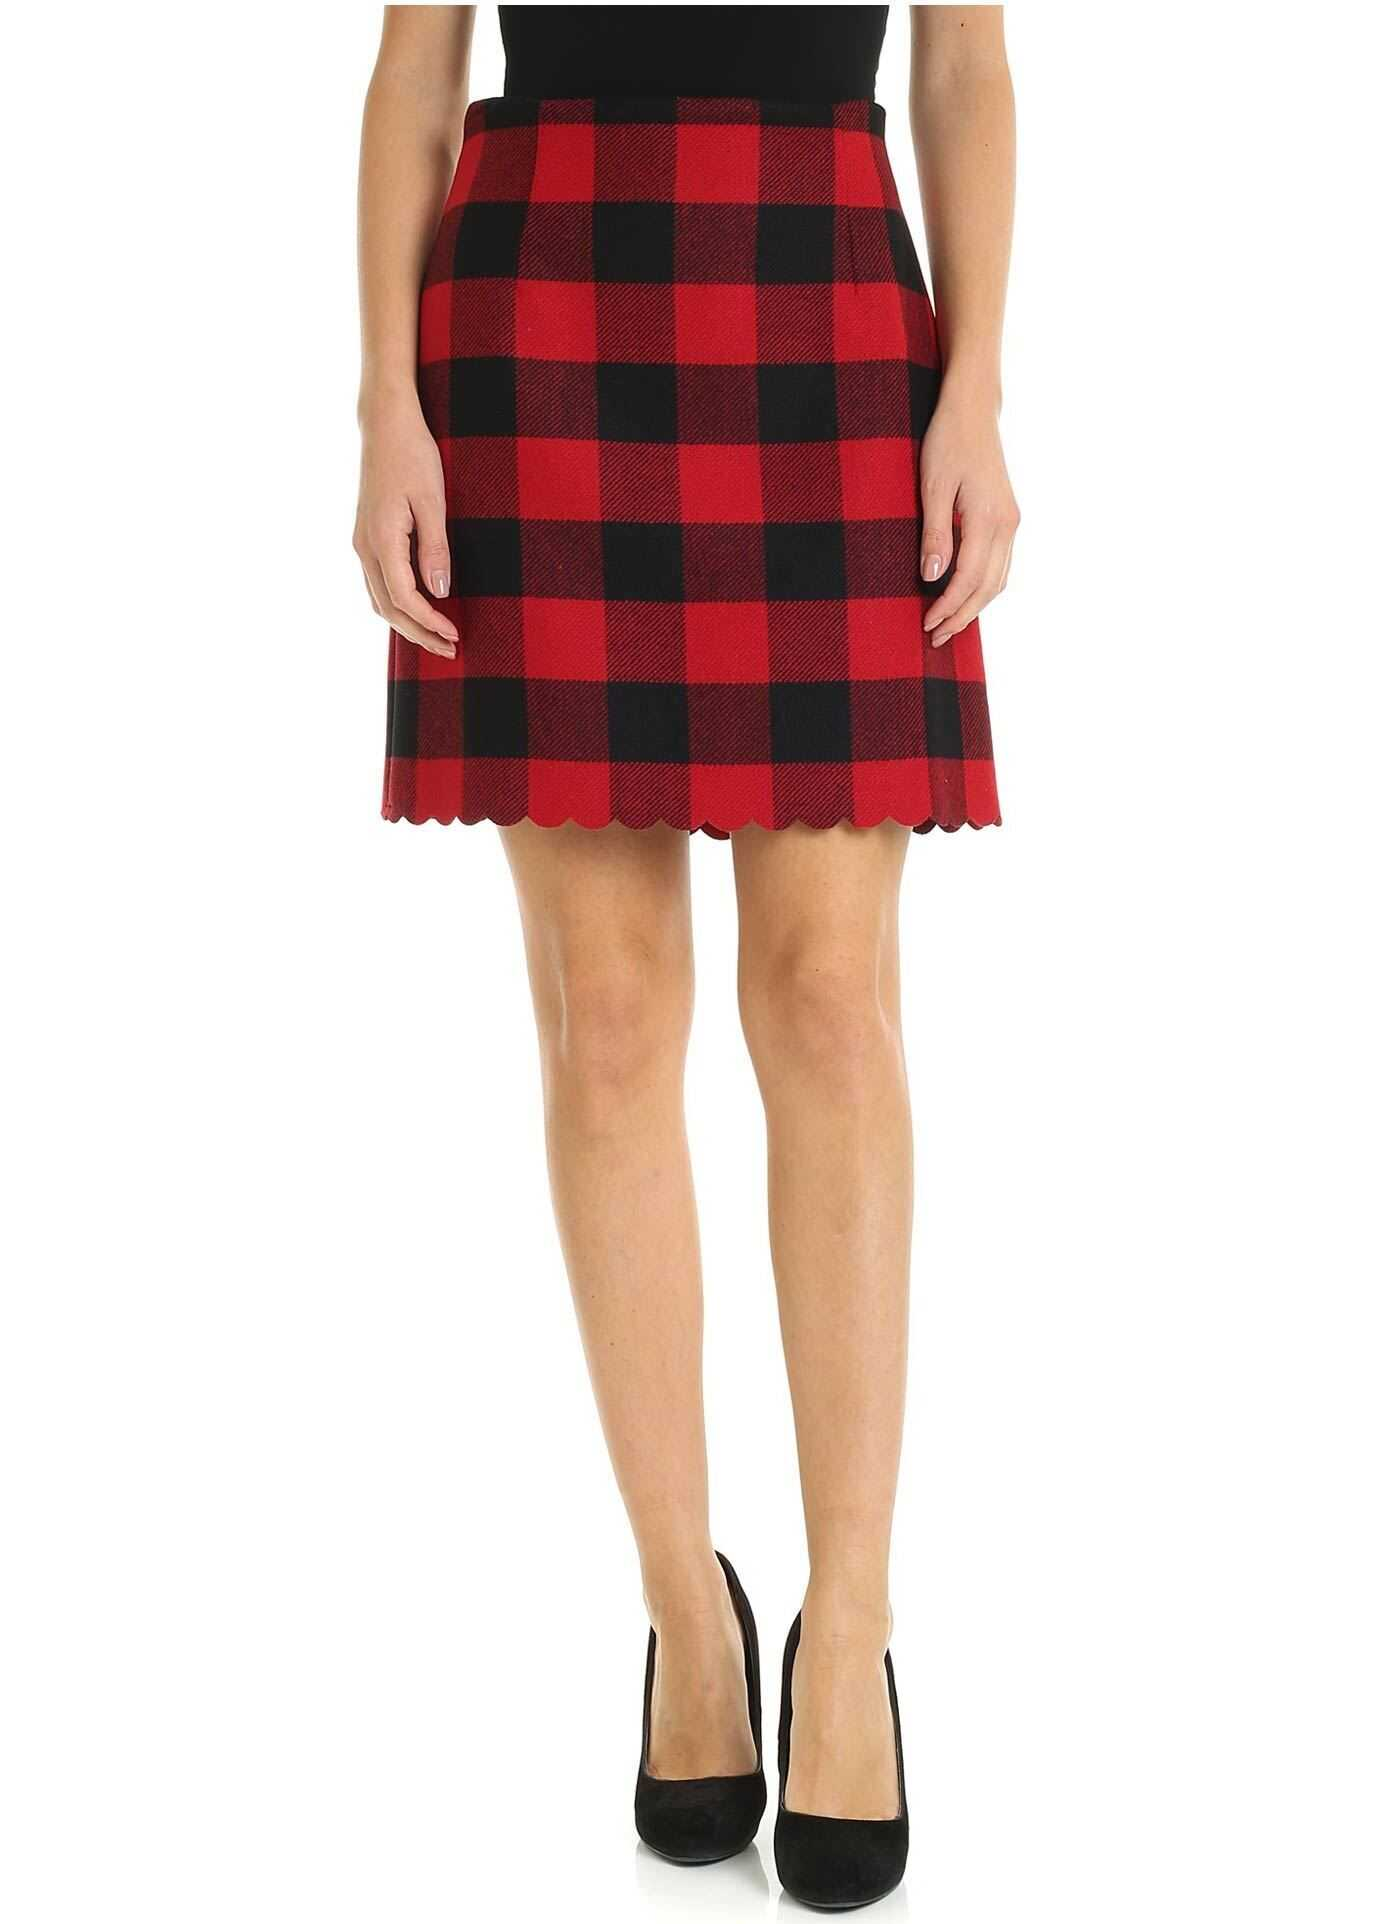 Ozonizzare Skirt In Red And Black Checked thumbnail